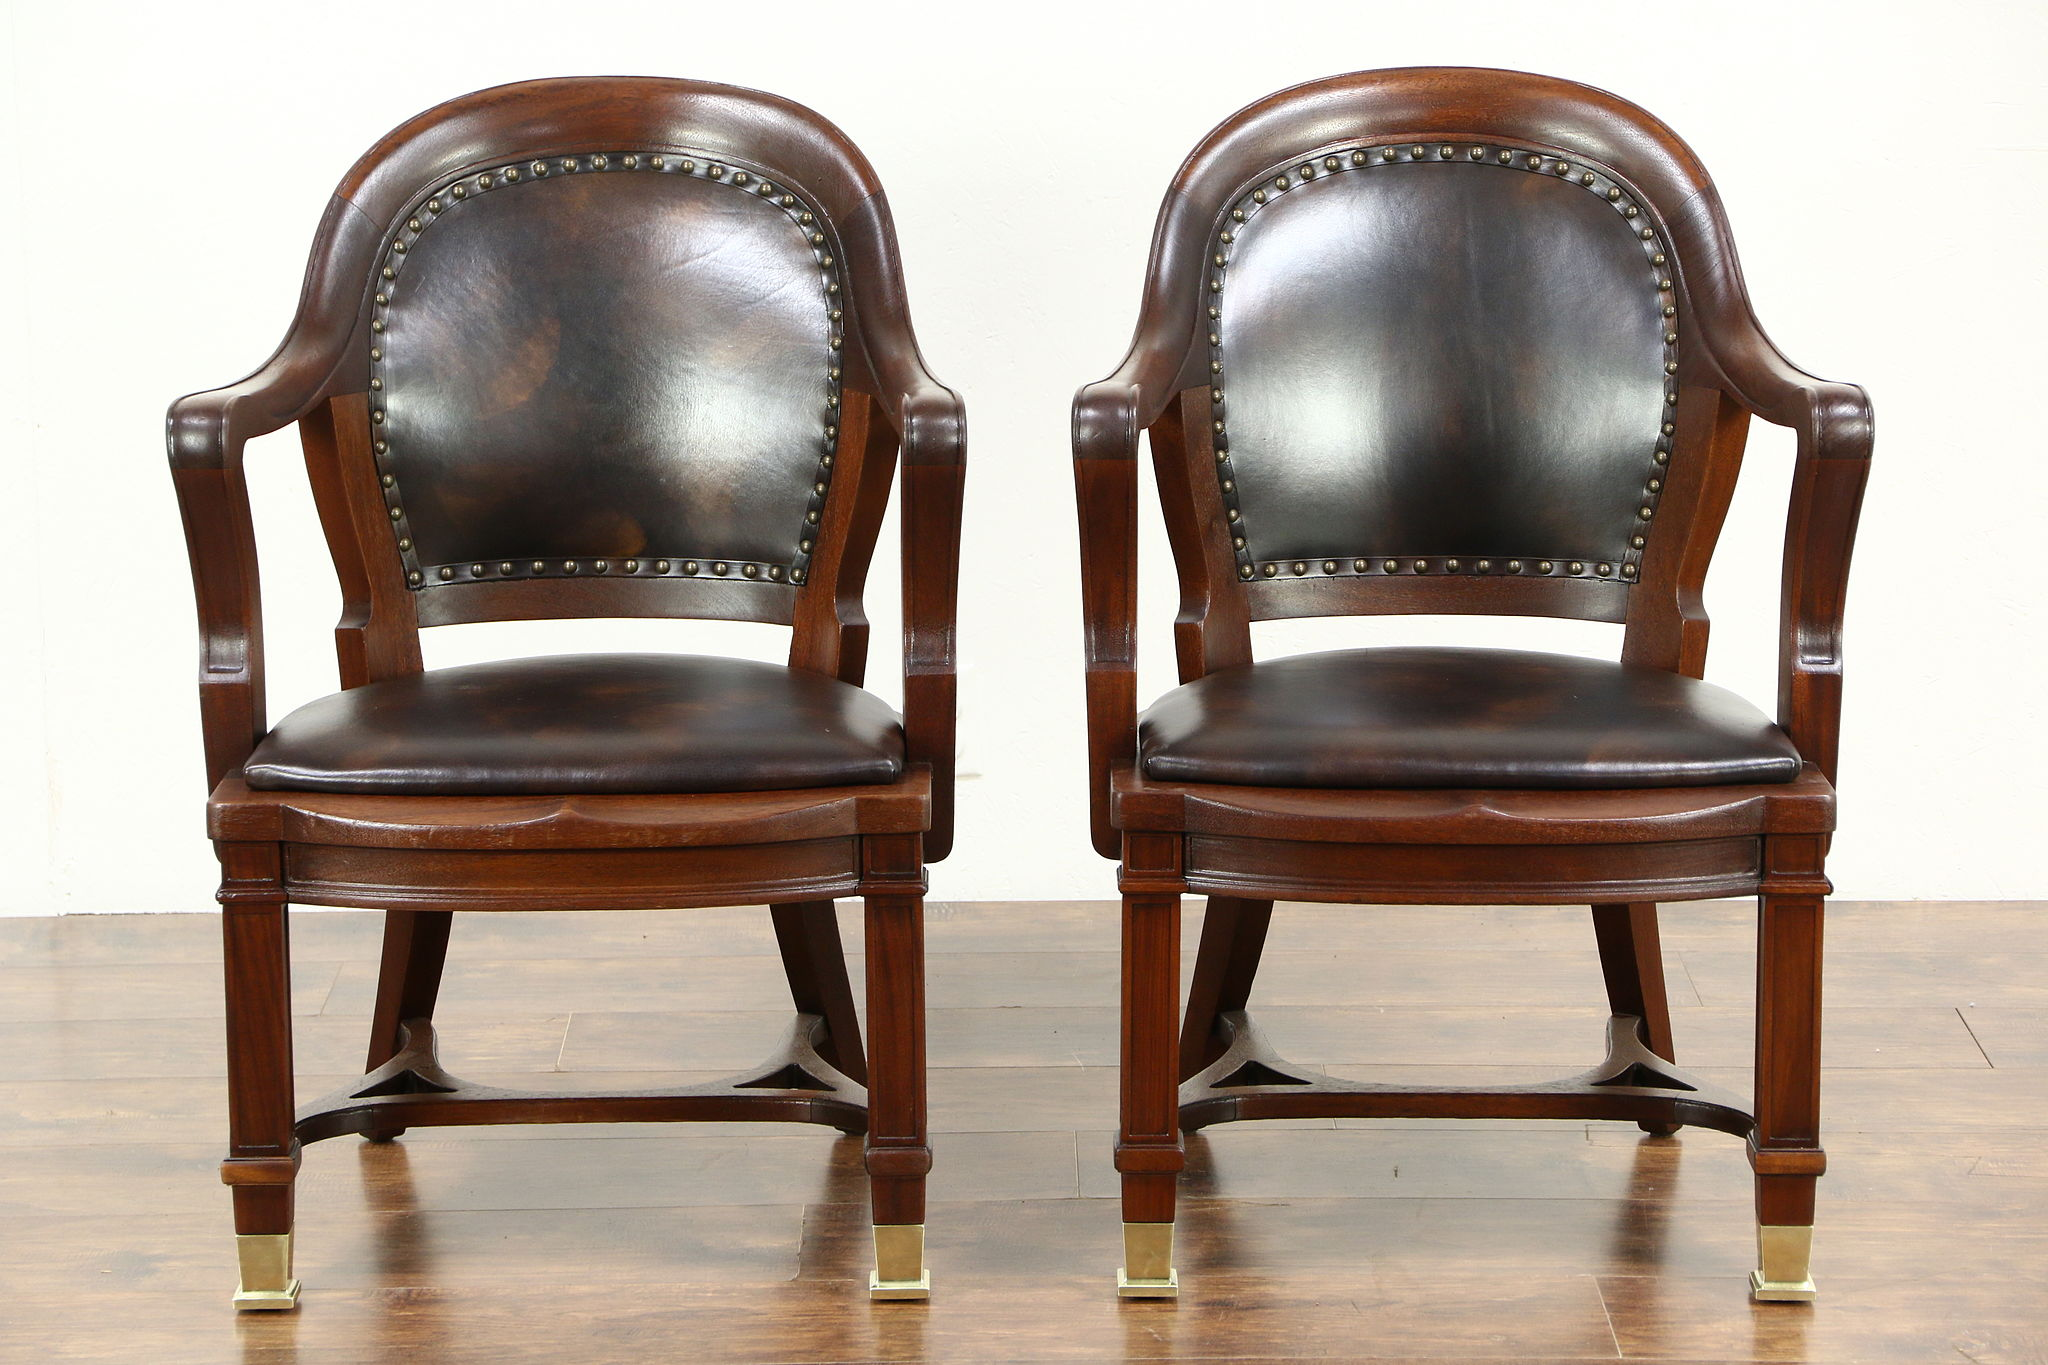 Pair 1910 Antique Carved Mahogany Executive or Library Chairs   SOLD   Pair 1910 Antique Carved Mahogany Executive or Library  . Antique Library Armchairs. Home Design Ideas